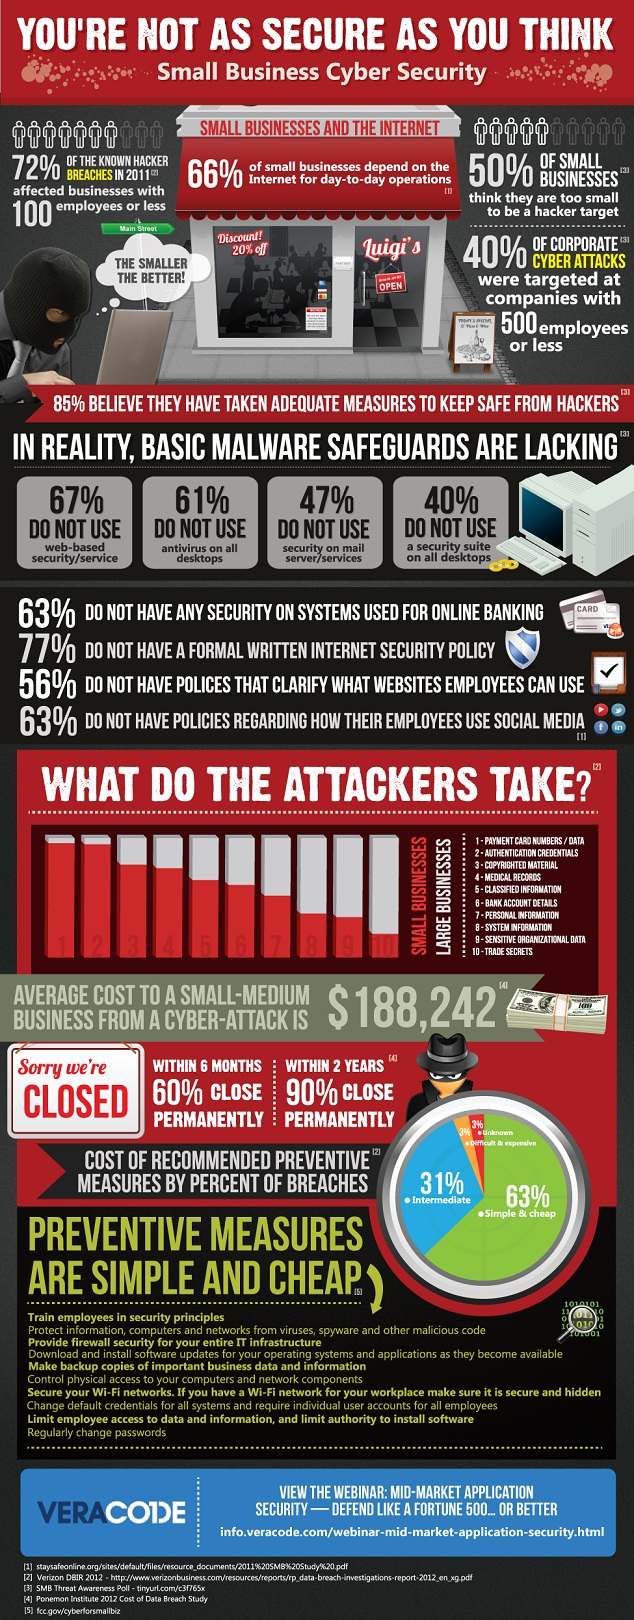 small-business-cyber-security